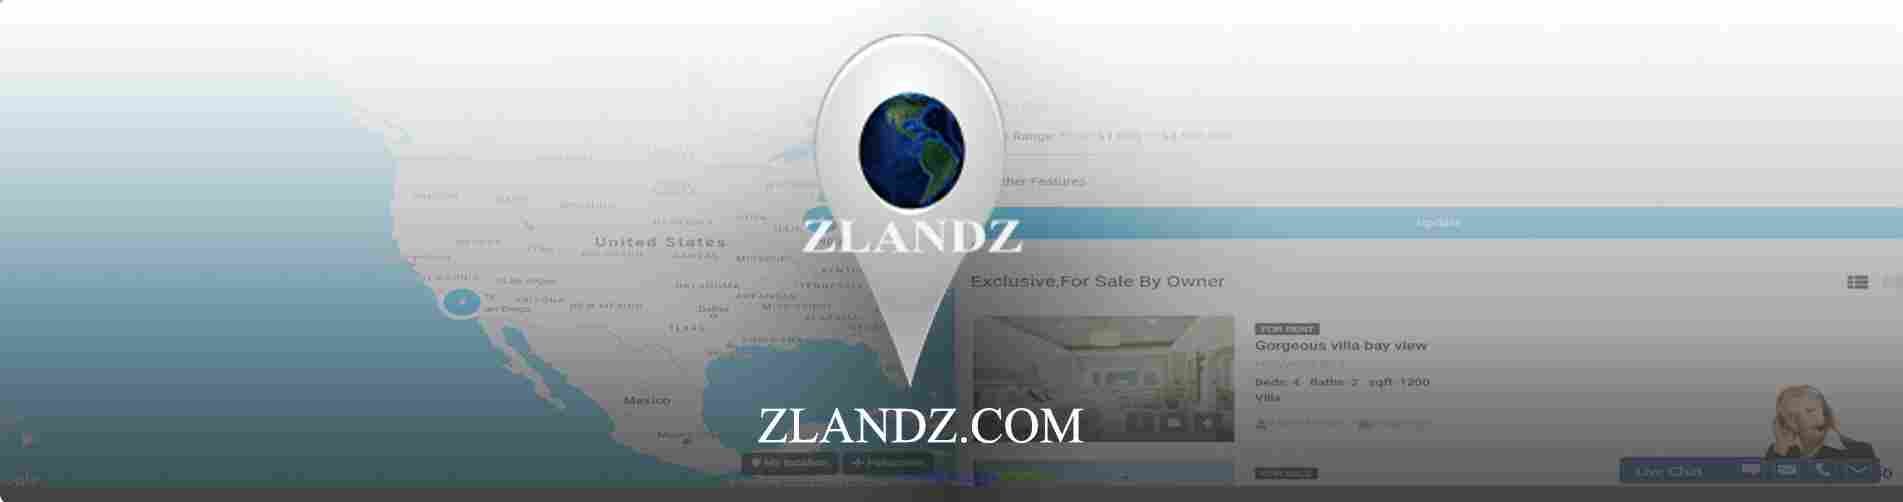 List your Property For Free - Zlandz.com calgary